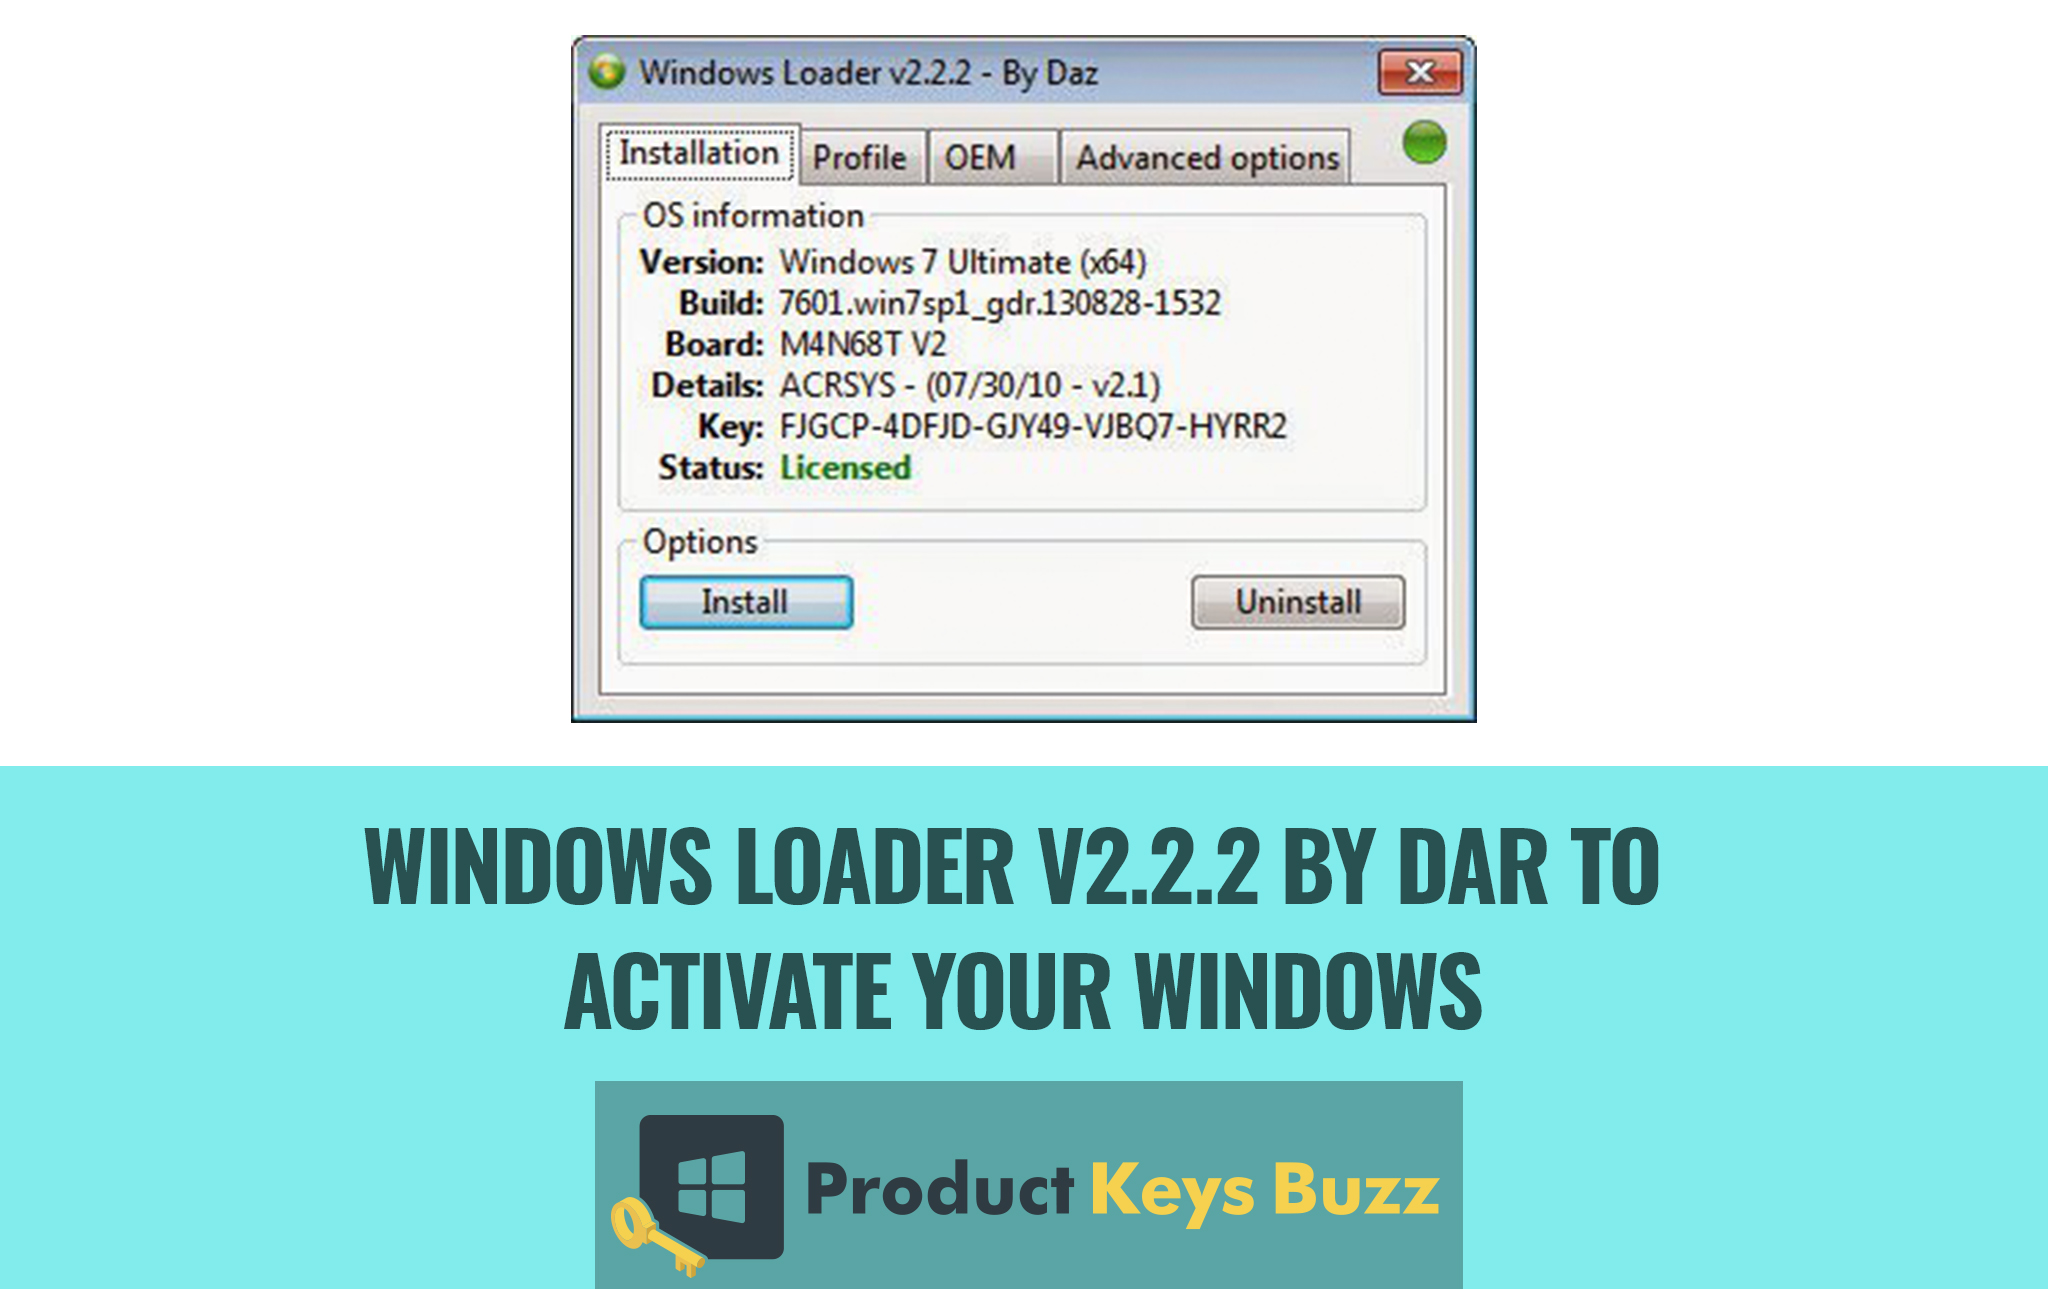 Windows Loader v2 2 2 by Dar to Activate Your Windows